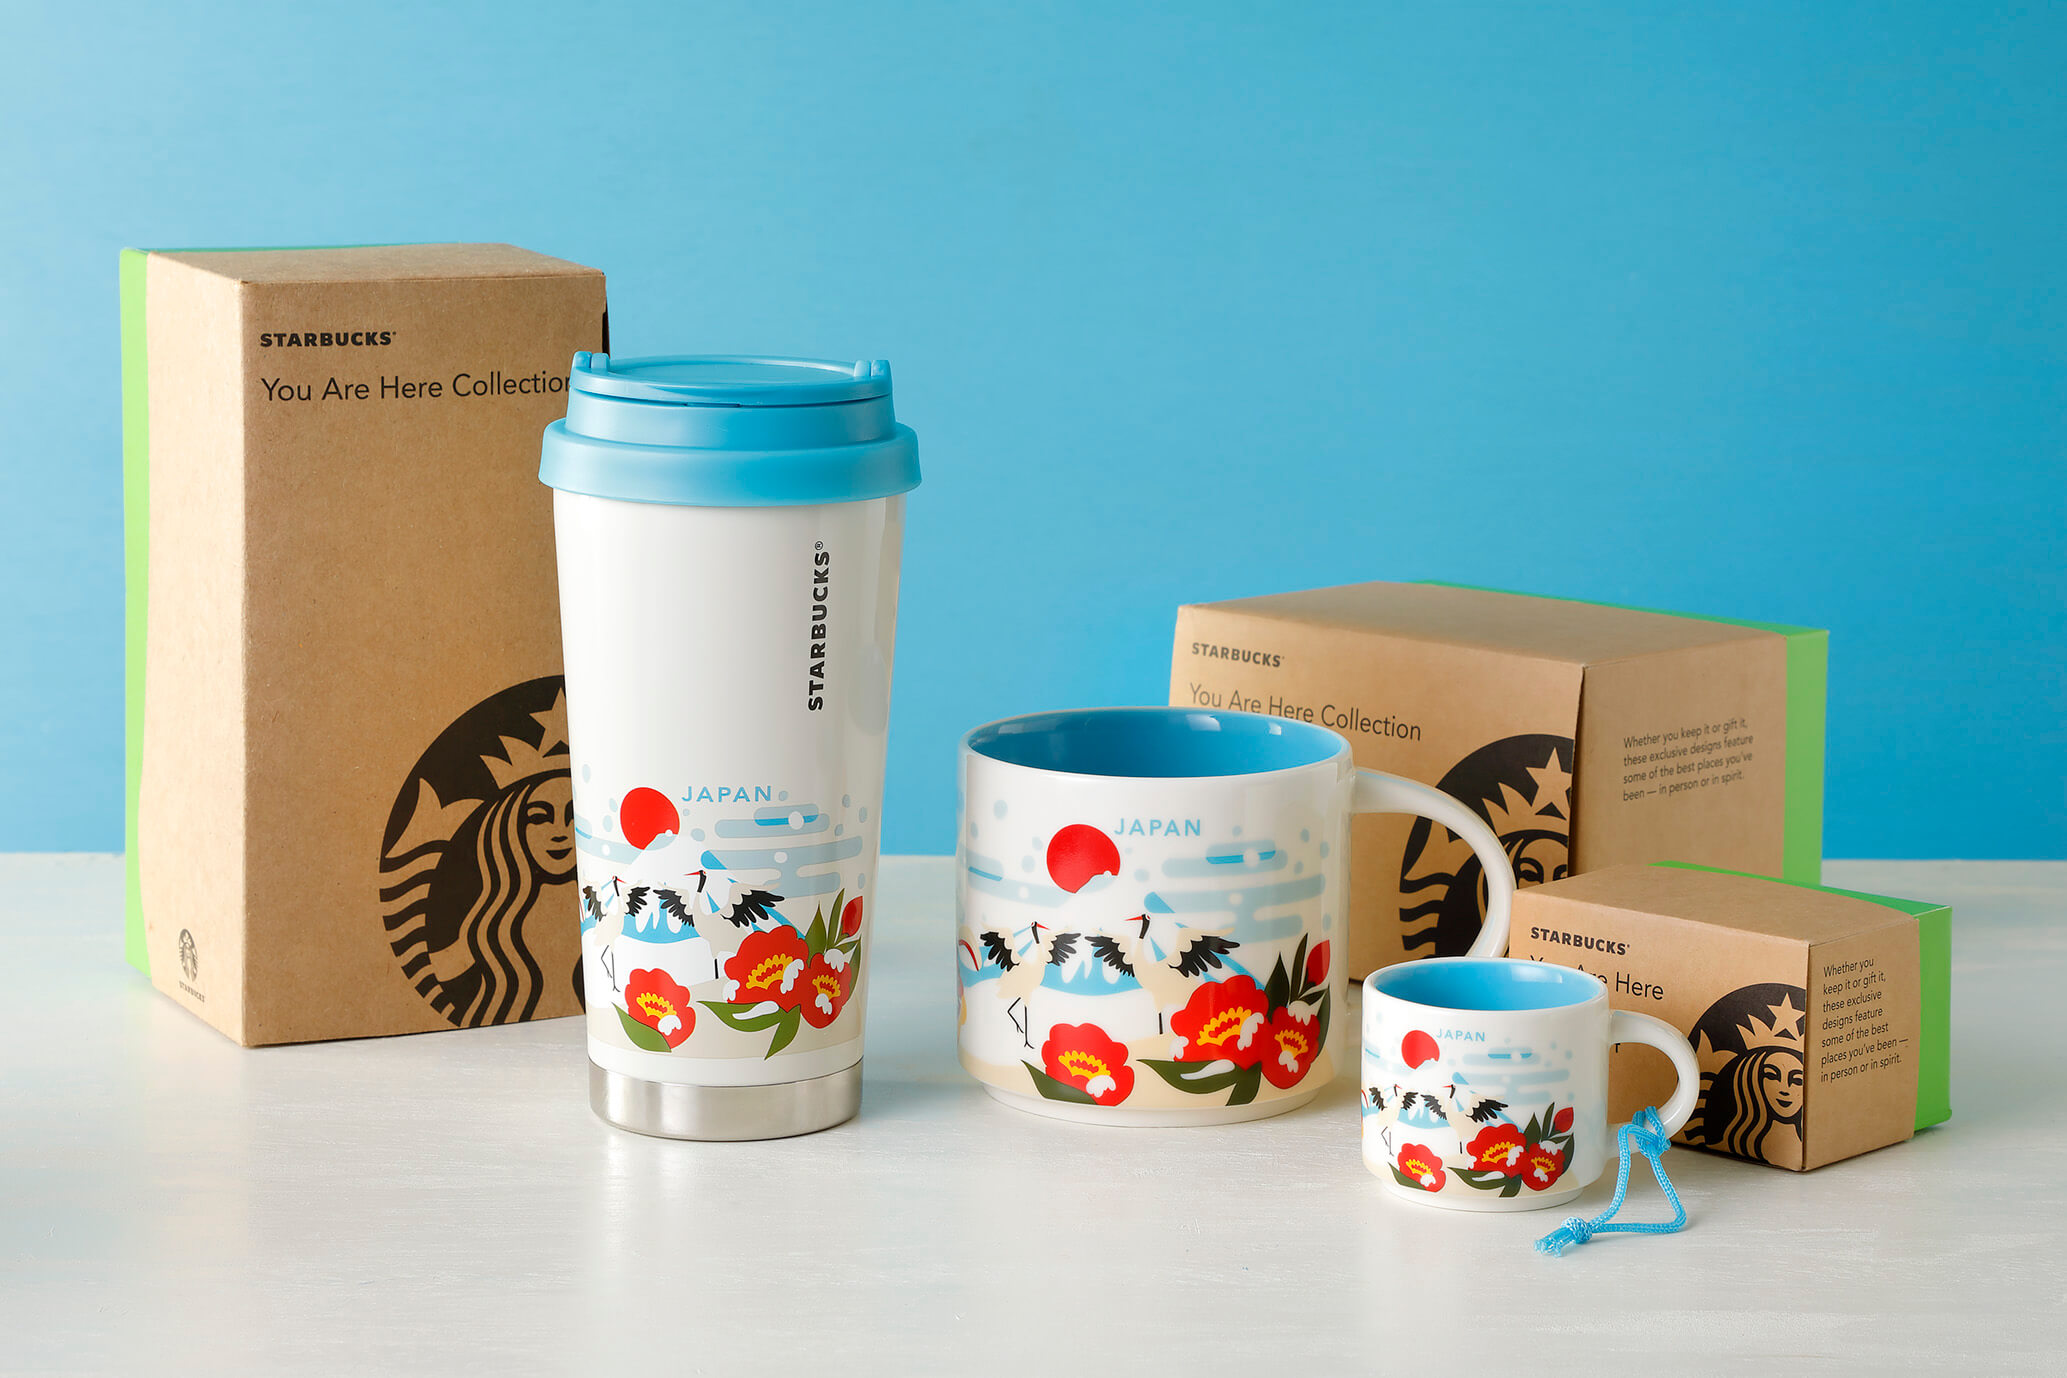 Starbucks Japan Adds New Winter Mt Fuji Mugs To Region Exclusive You Are Here Collection Soranews24 Japan News